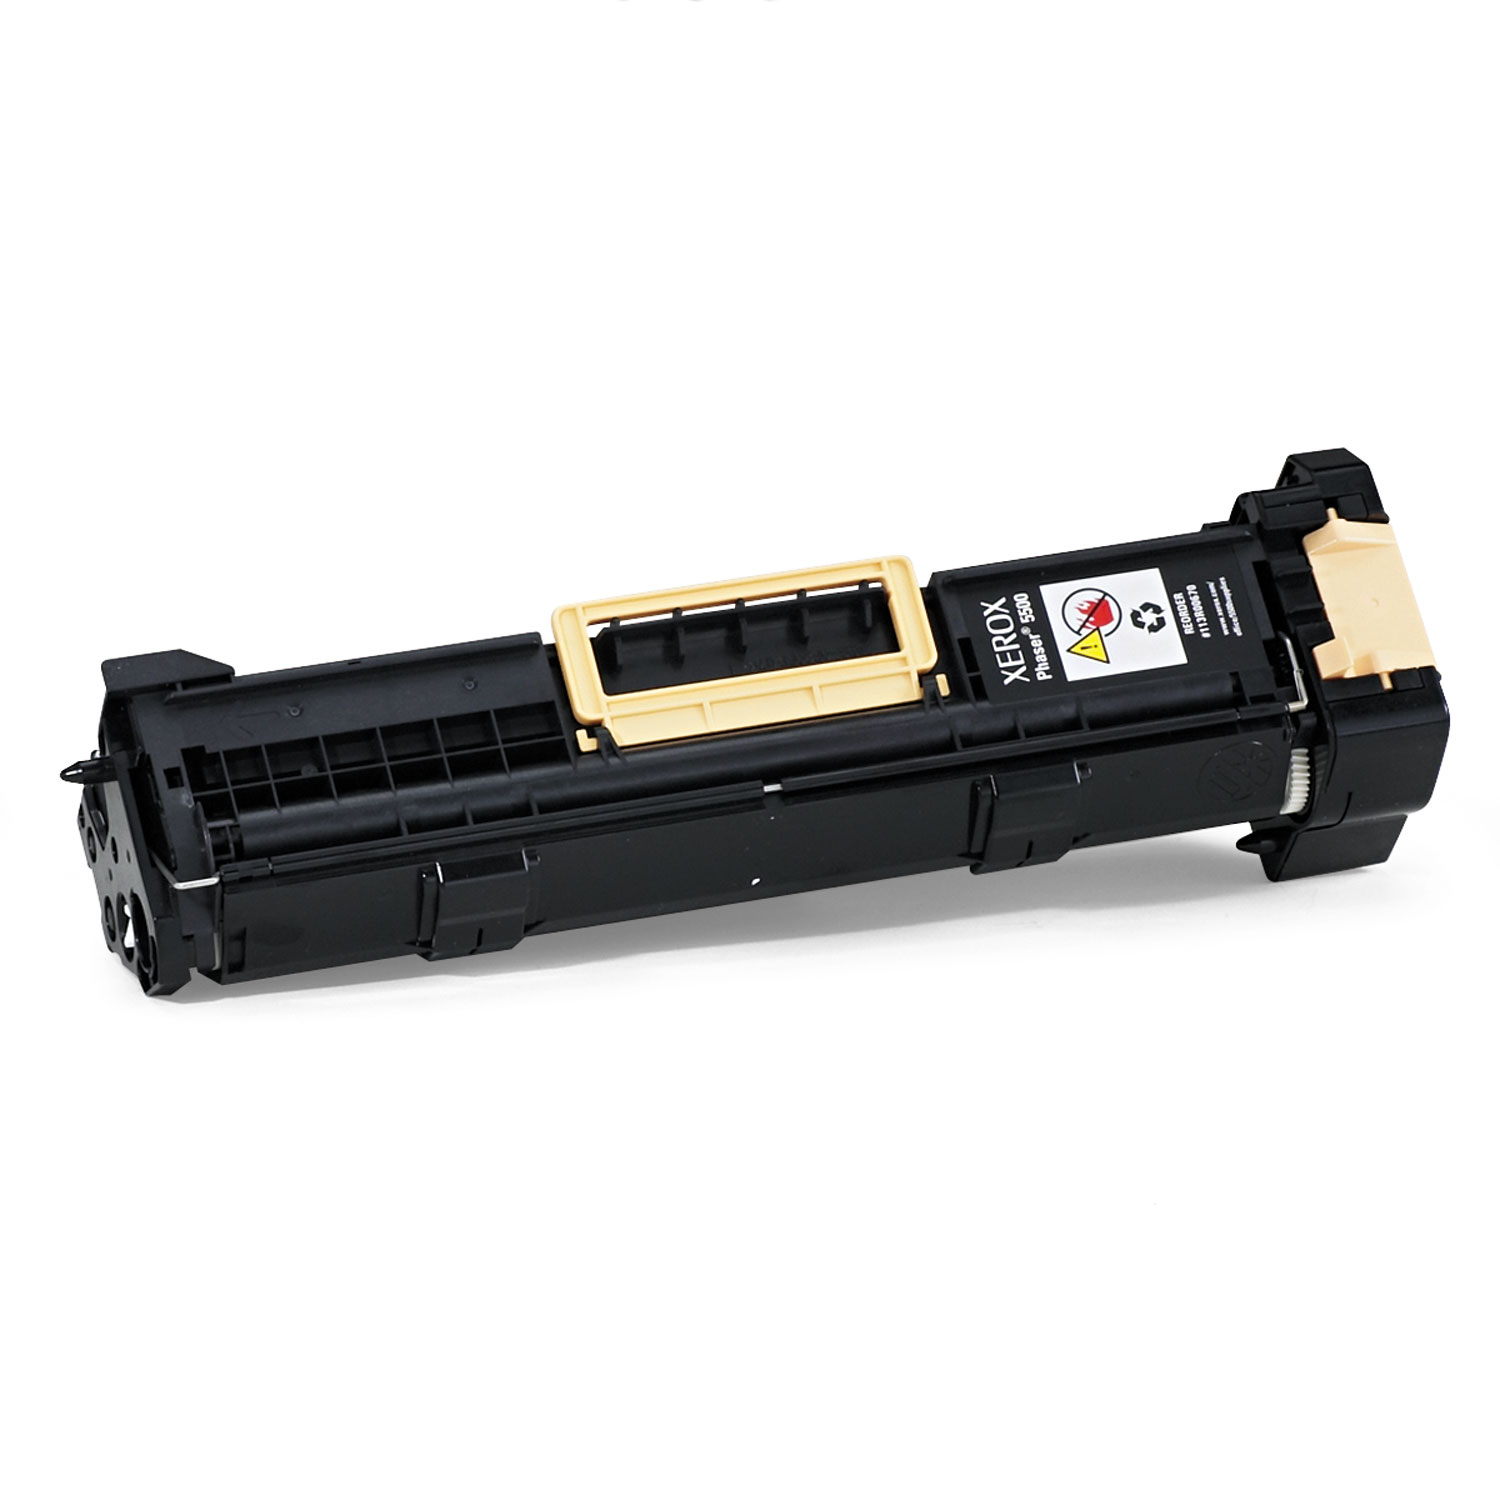 113R00670 Drum Unit, 60000 Page-Yield, Black